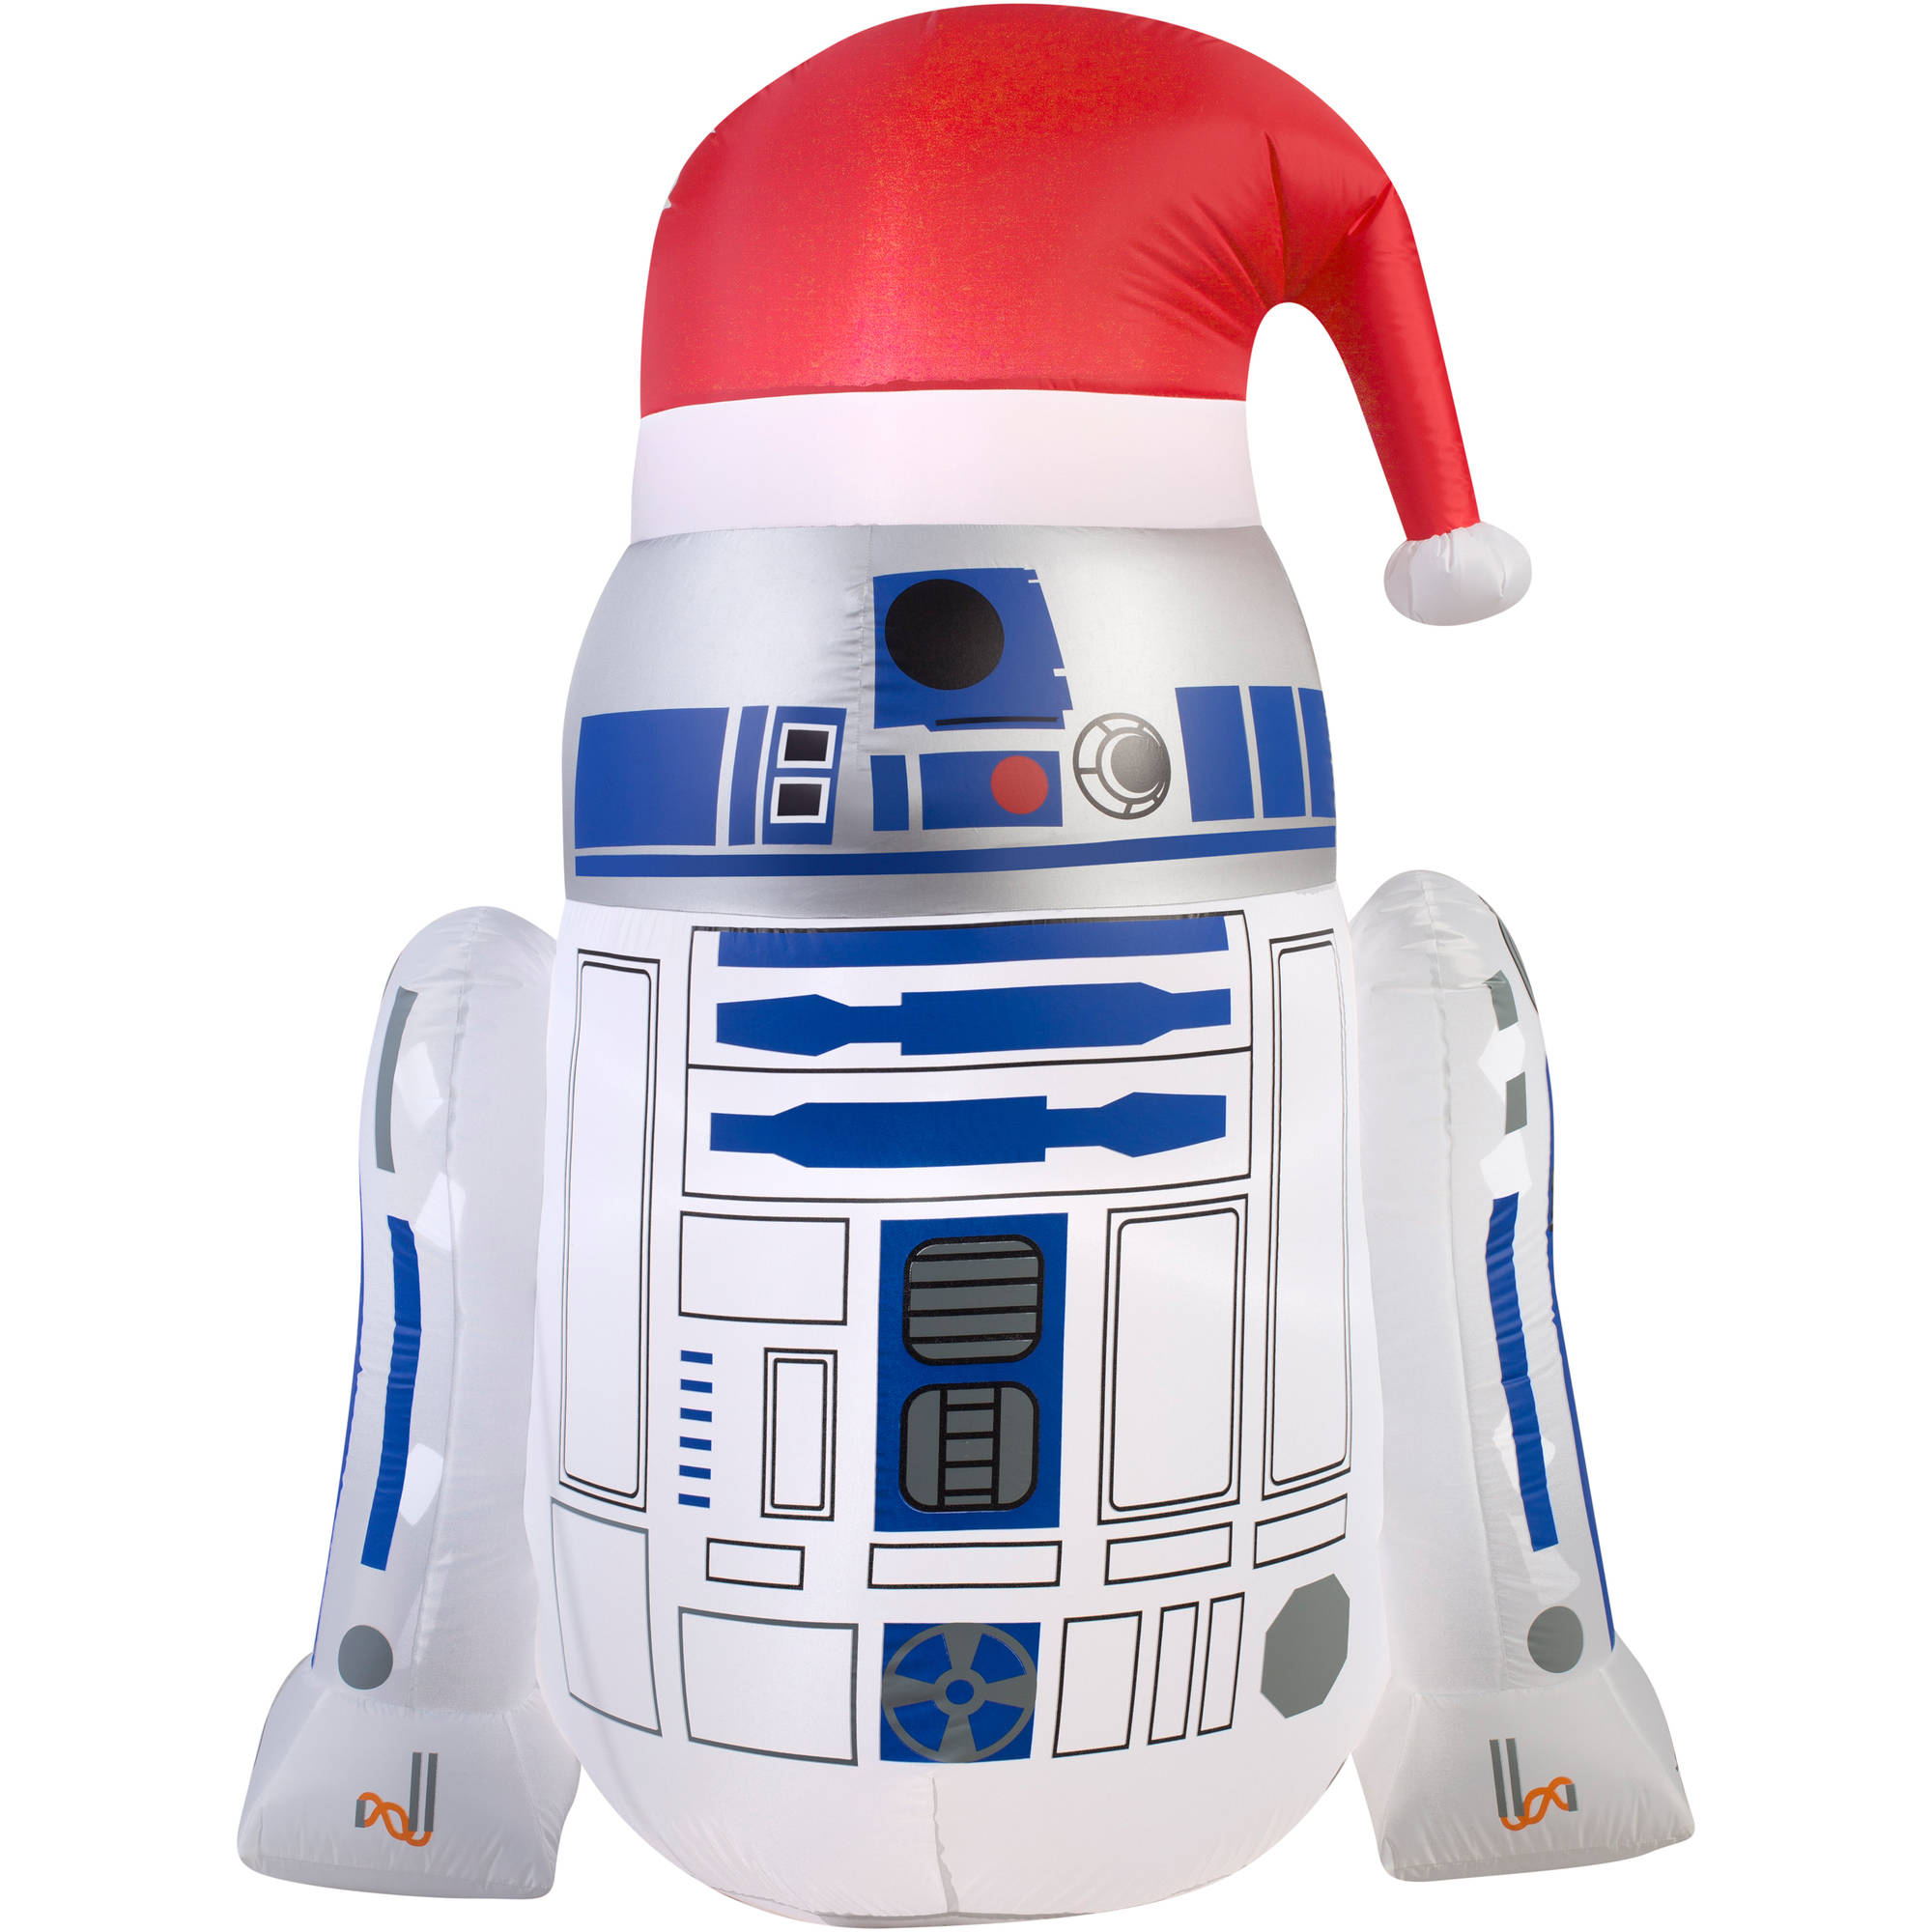 Surprising 4396Quot Airblown Inflatable R2D2 With Santa Hat Star Wars Christmas Easy Diy Christmas Decorations Tissureus